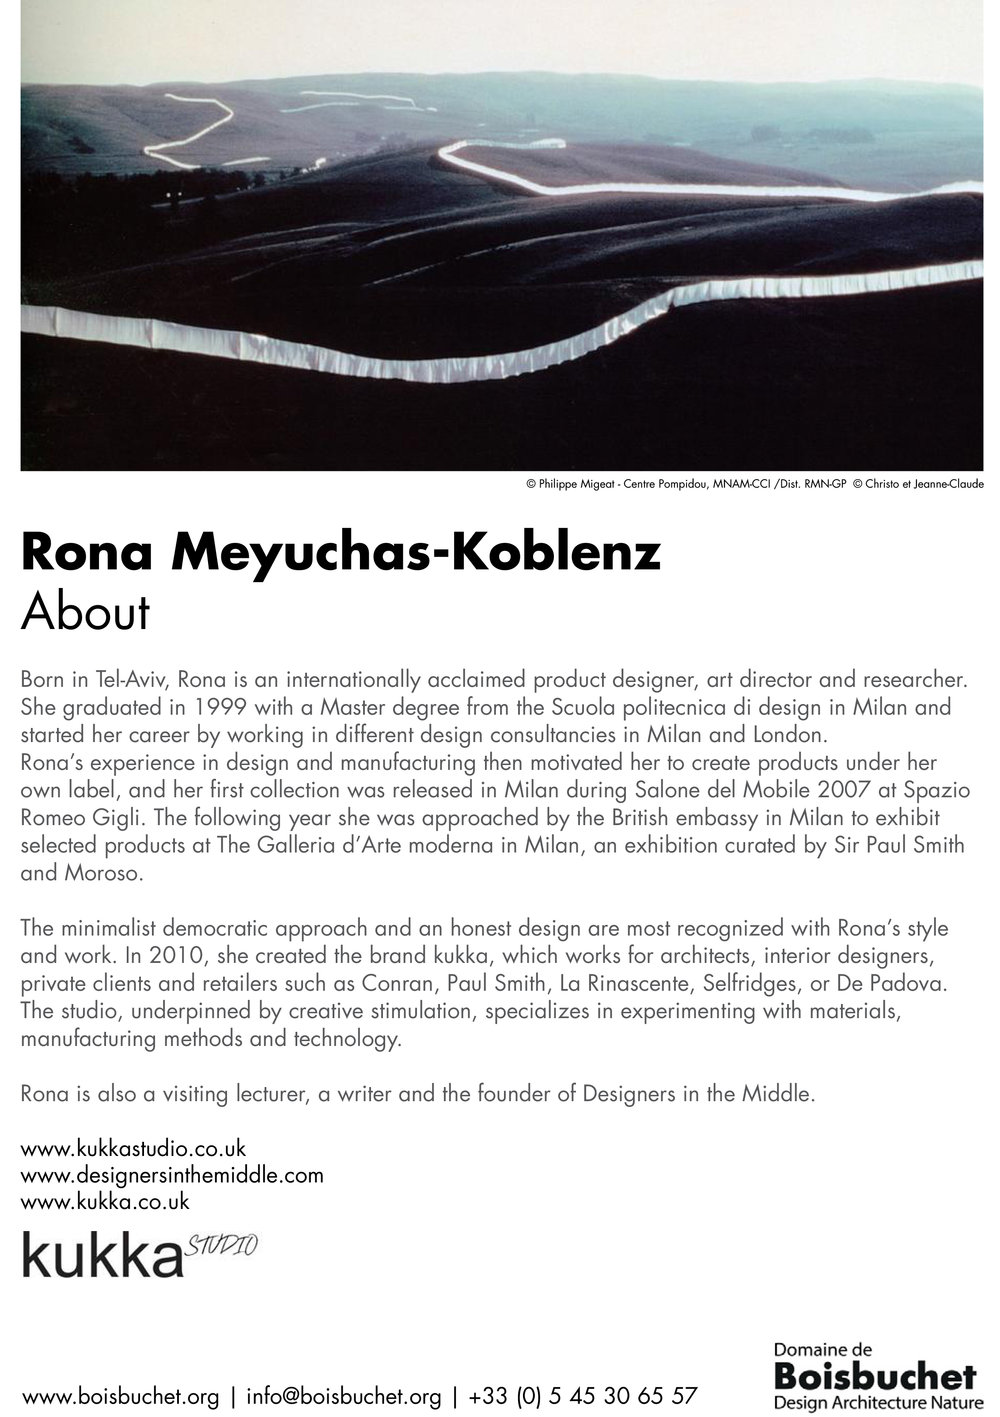 Boisbuchet2018_Rona Meyuchas-Koblenz _The fence-Designers in the middle01-2.jpg